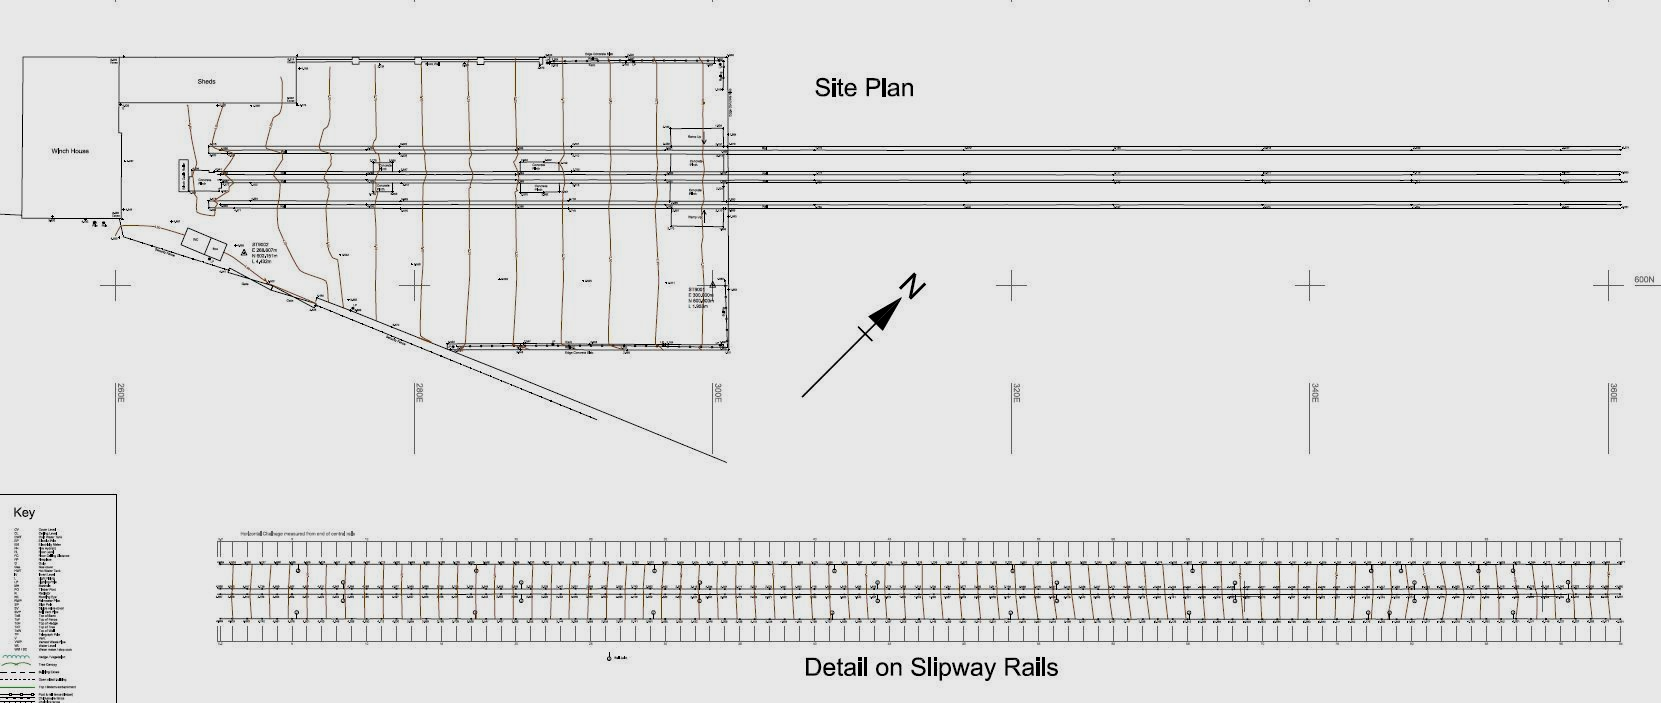 Slipway rails plan, Newlyn, Cornwall